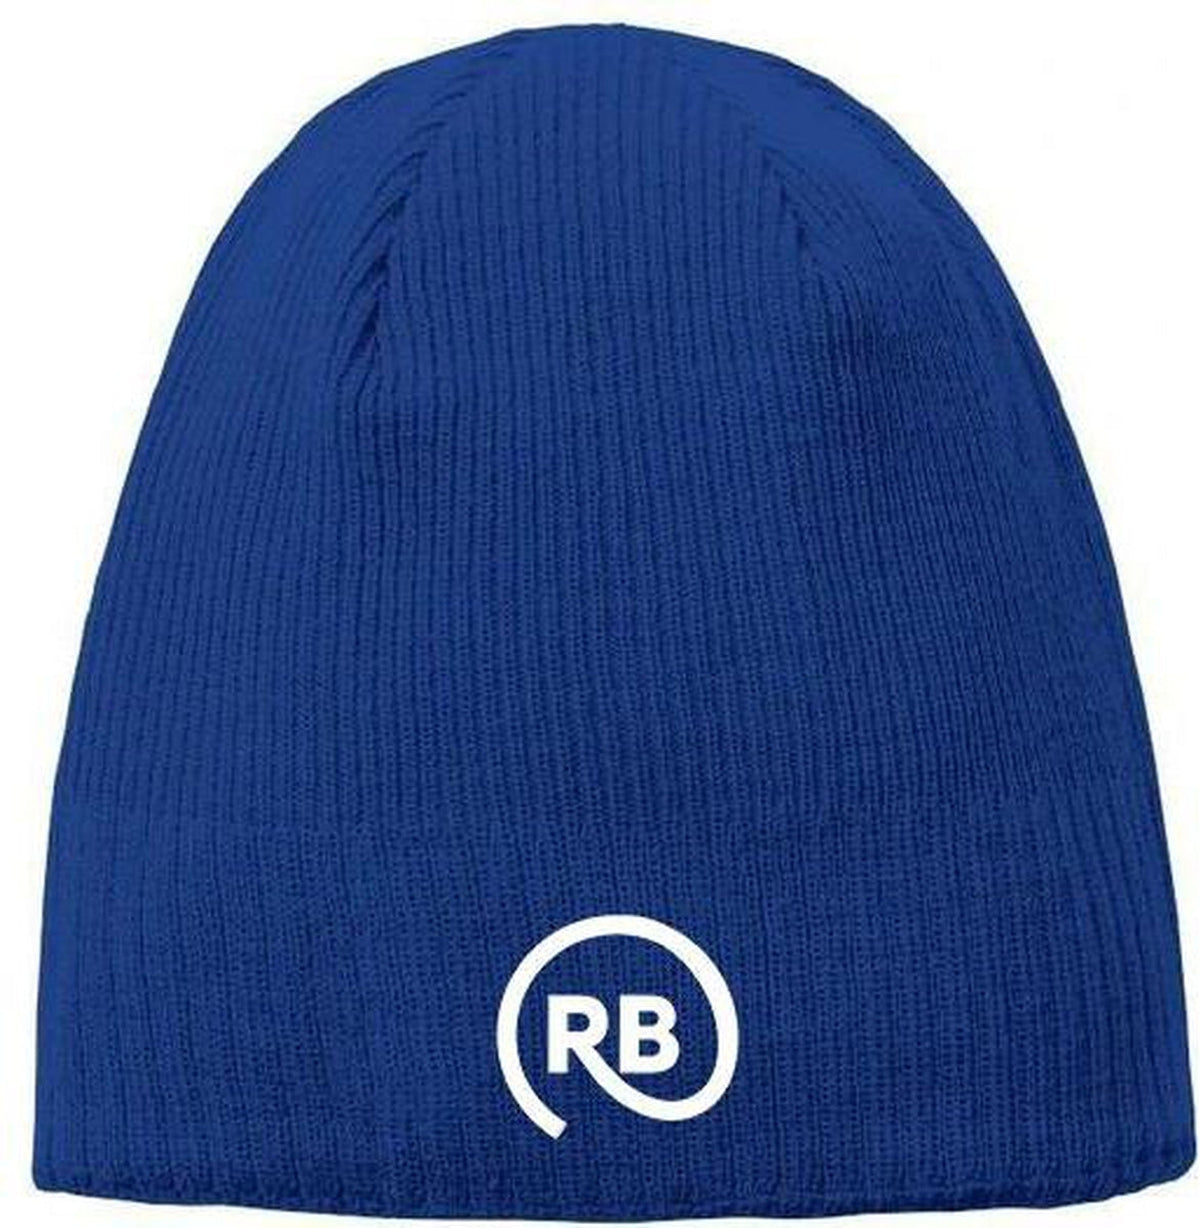 New Era Knit Beanie-Beanie-Thread Logic